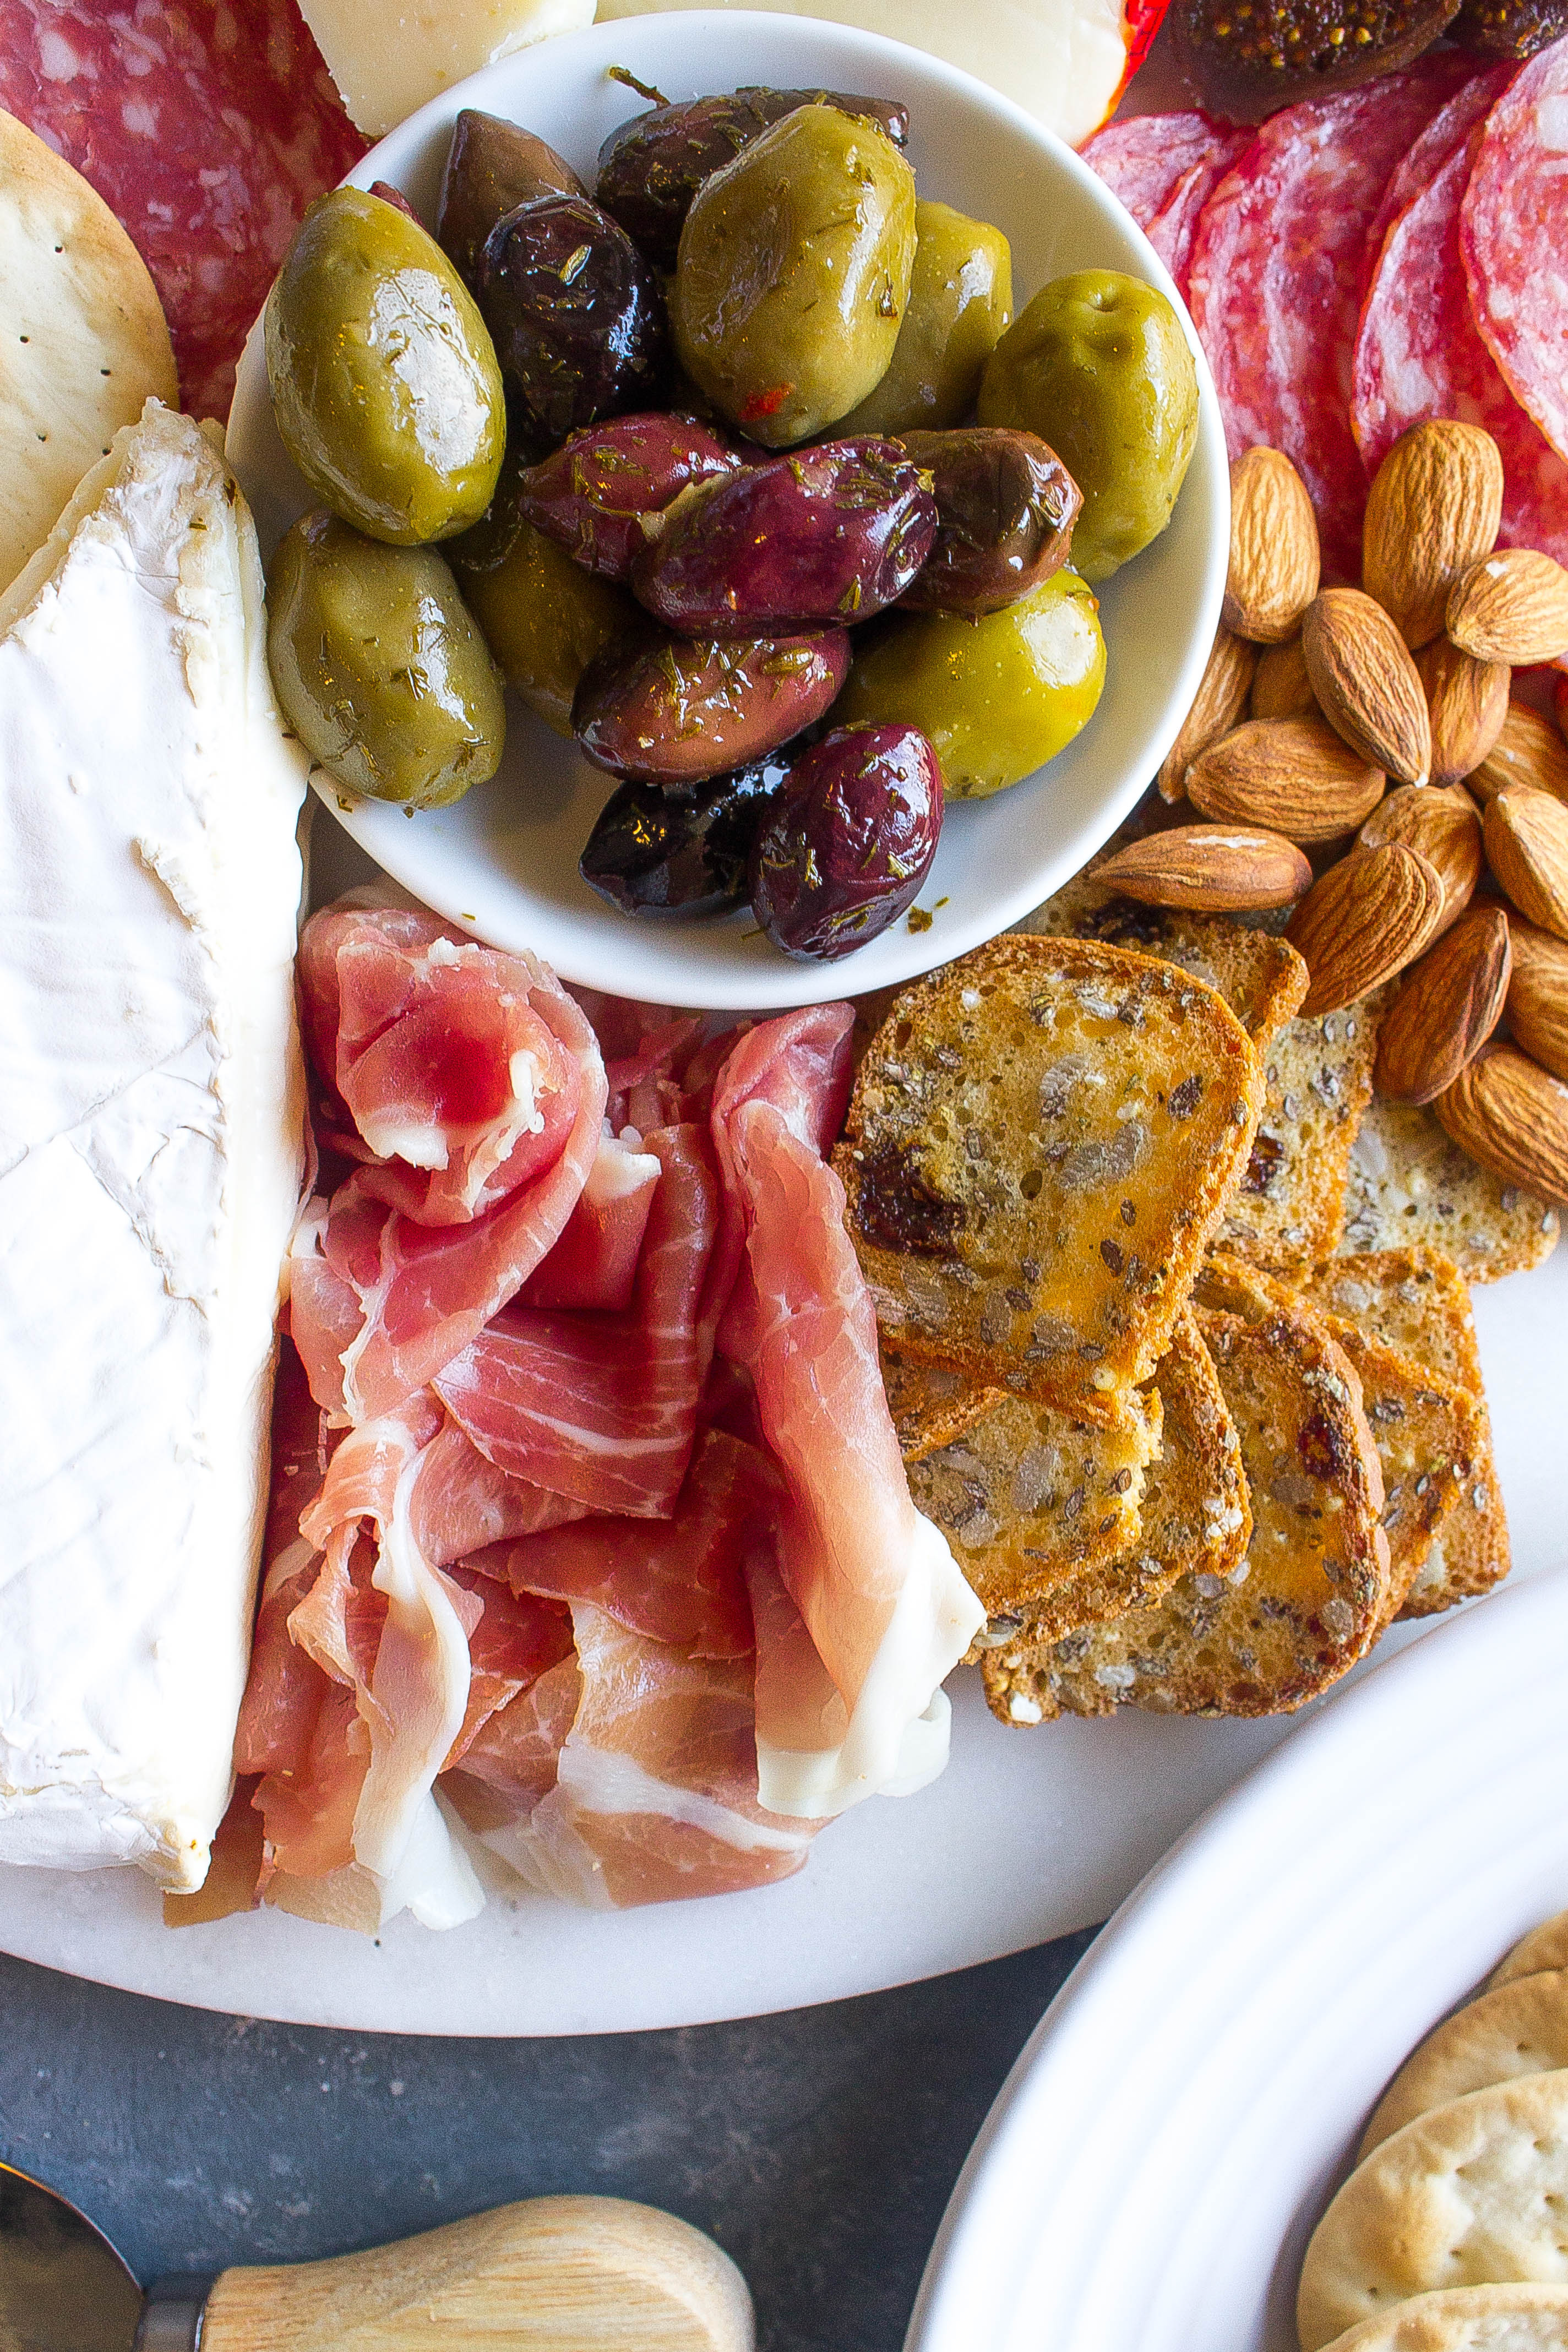 Cheese plate with prosciutto and olives